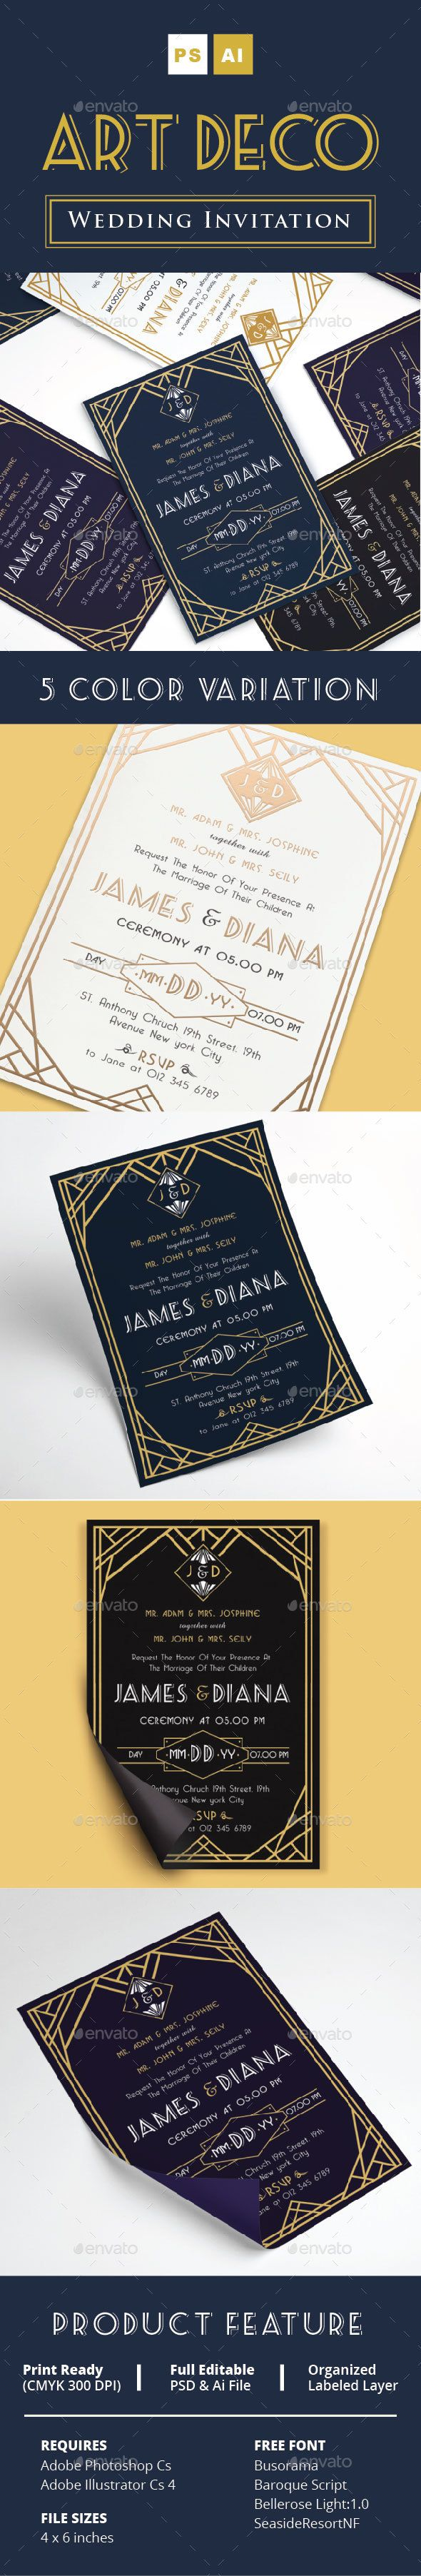 free wedding invitation psd%0A    Best images about Wedding Invitation Template on Pinterest   Cleanses   Gatsby and Wedding